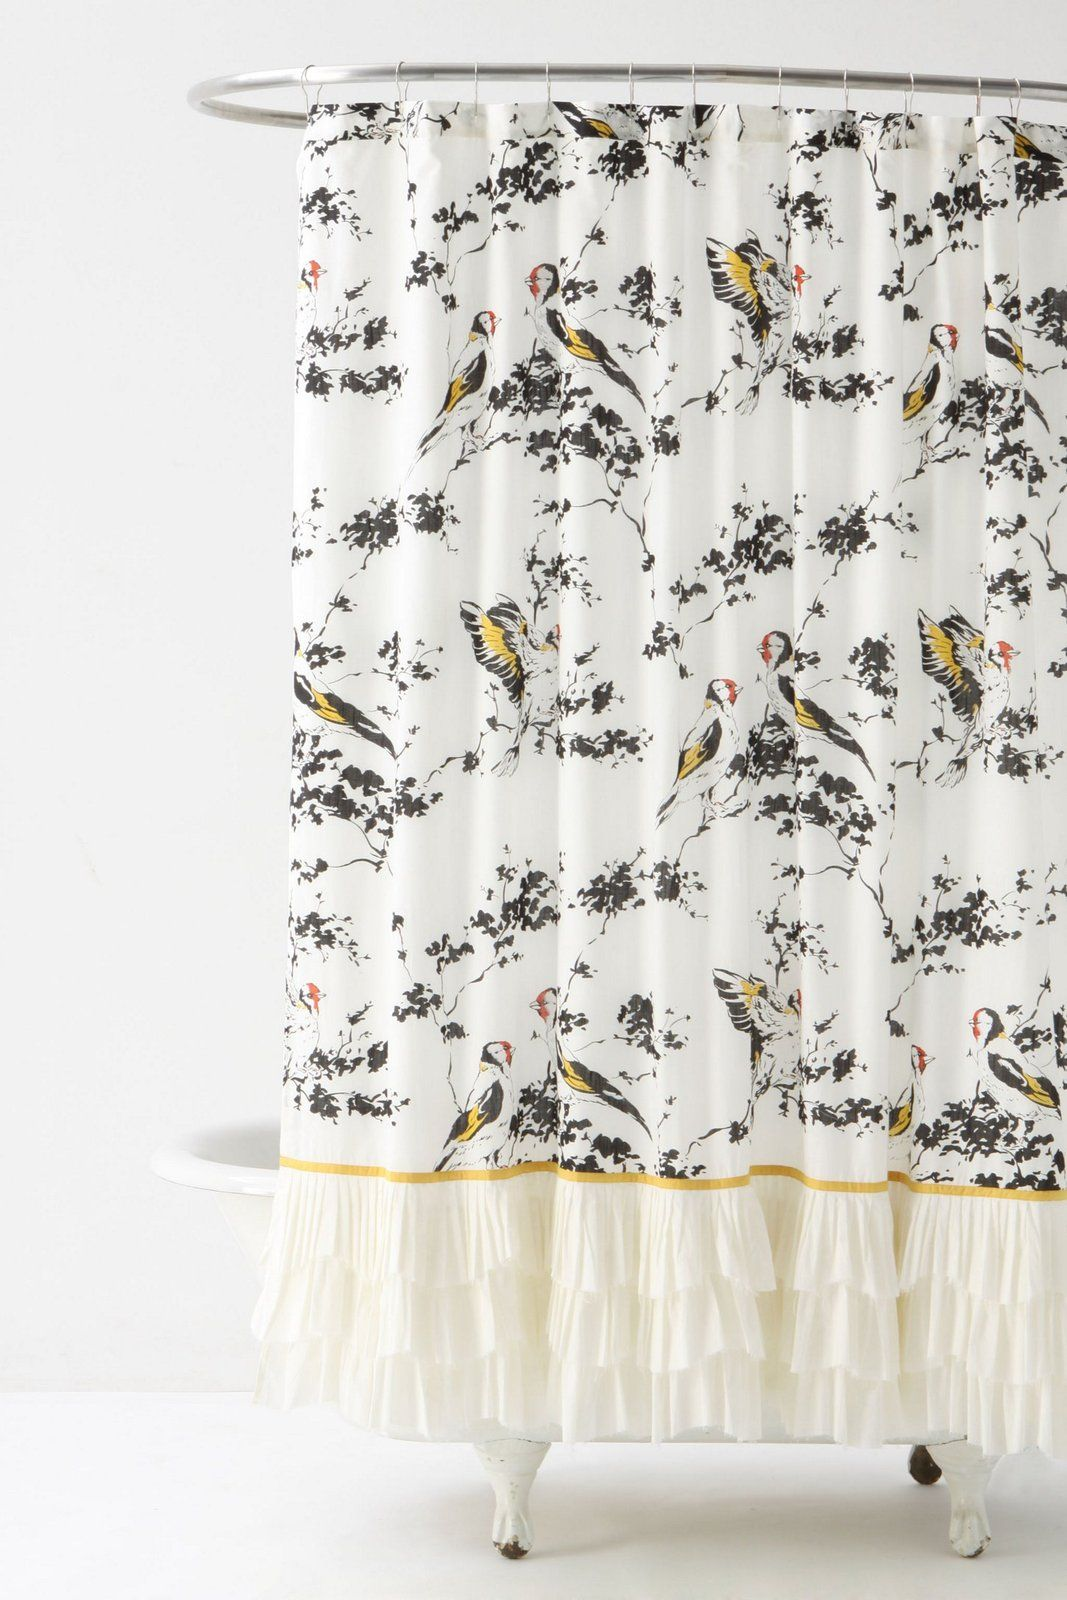 I Love These Ruffles Chaffinch Shower Curtain Anthropologie